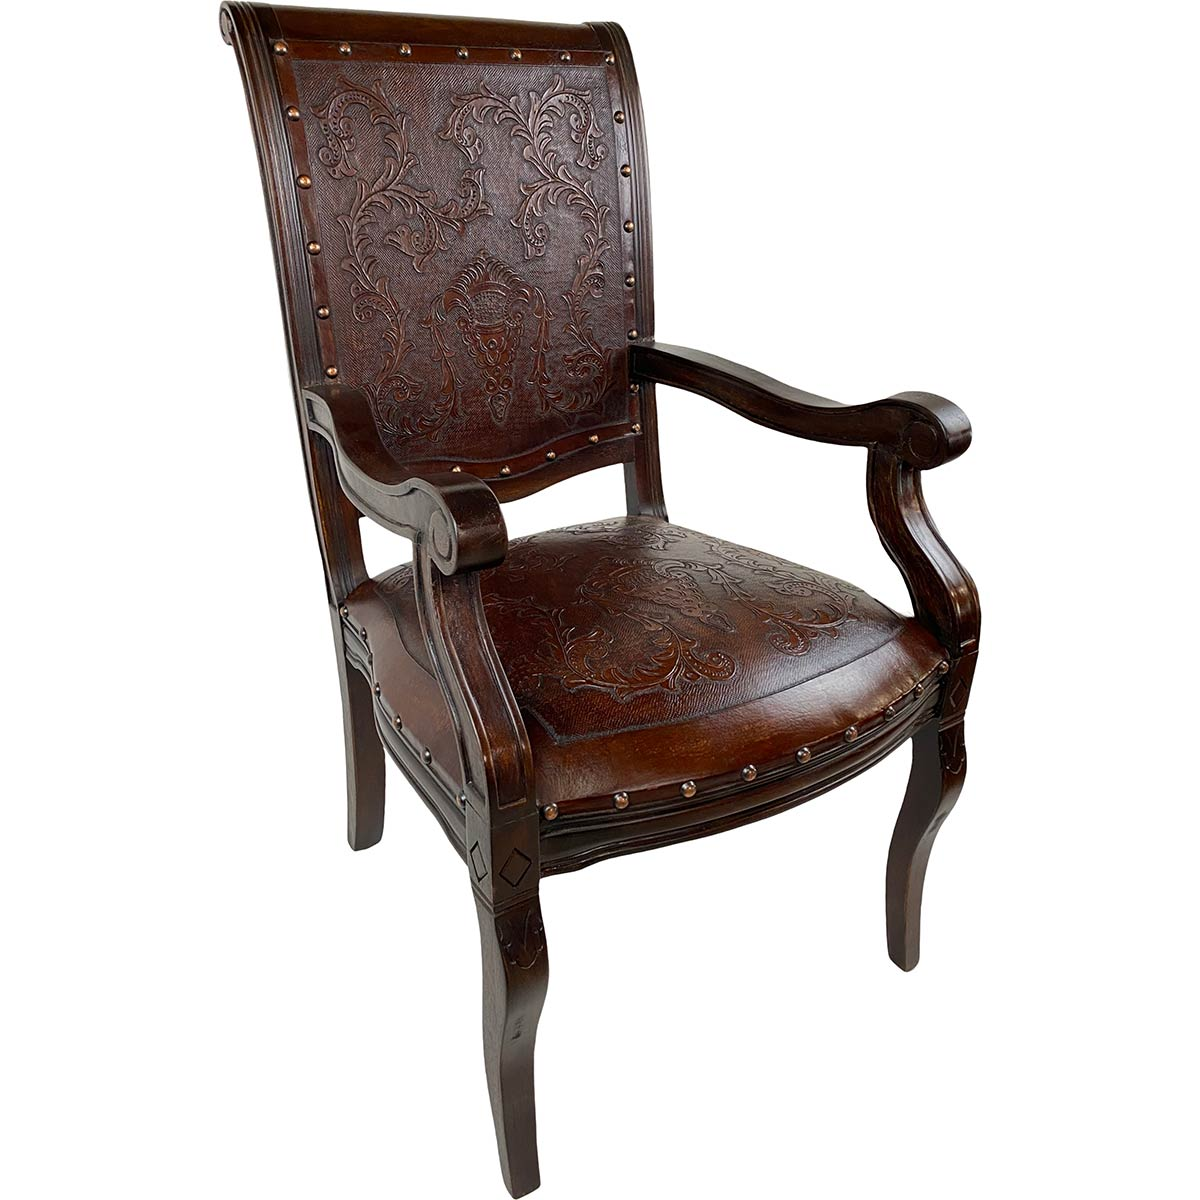 Imperial Chair with Arms - Colonial & Antique Brown